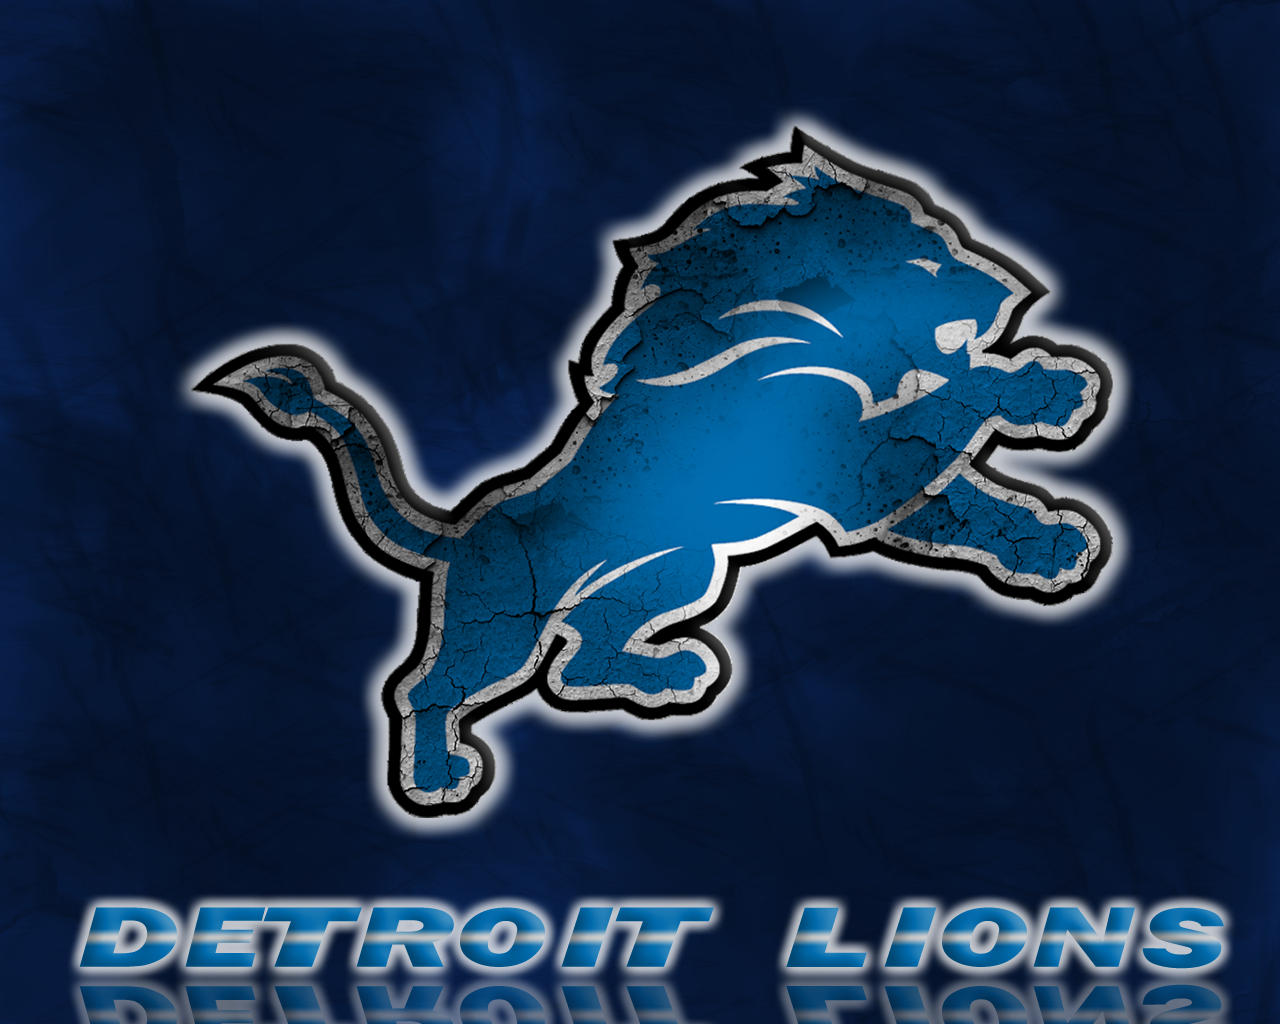 detroit lions logo wallpaper   Quotekocom 1280x1024